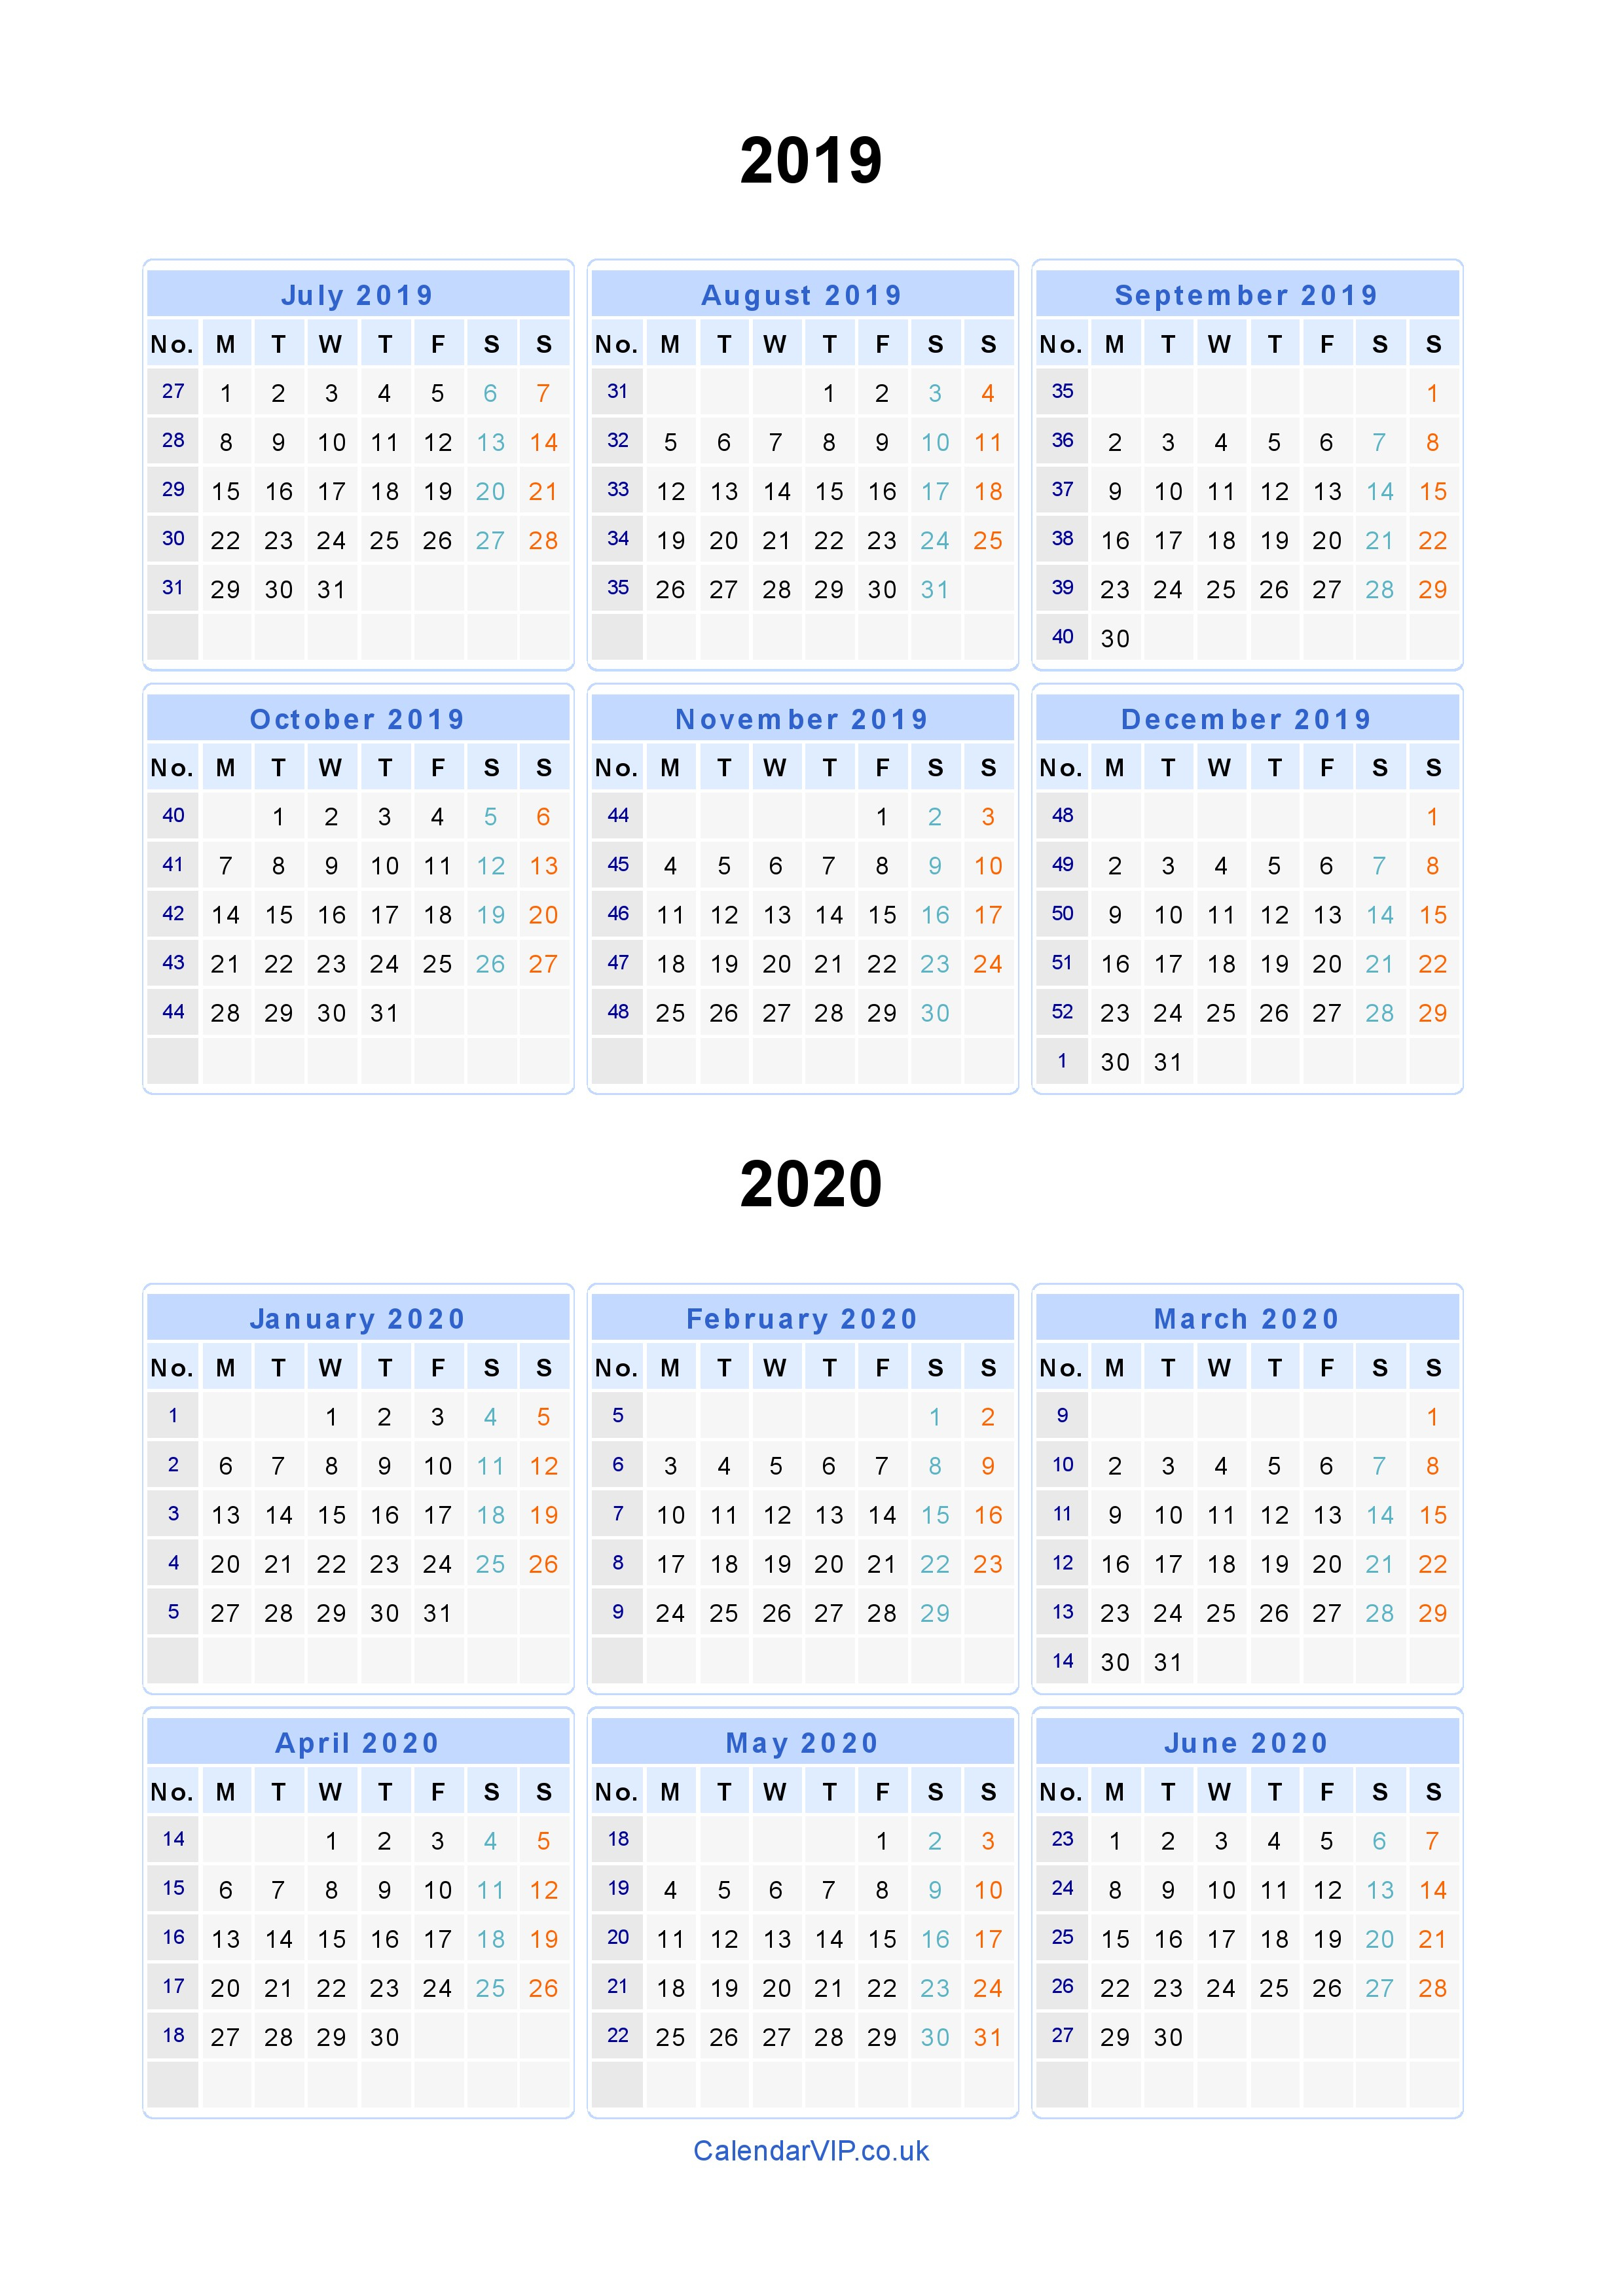 Split Year Calendars 2019 2020 - Calendar From July 2019 To June 2020 pertaining to Printable Calendar 2019 2020 Monday To Sunday